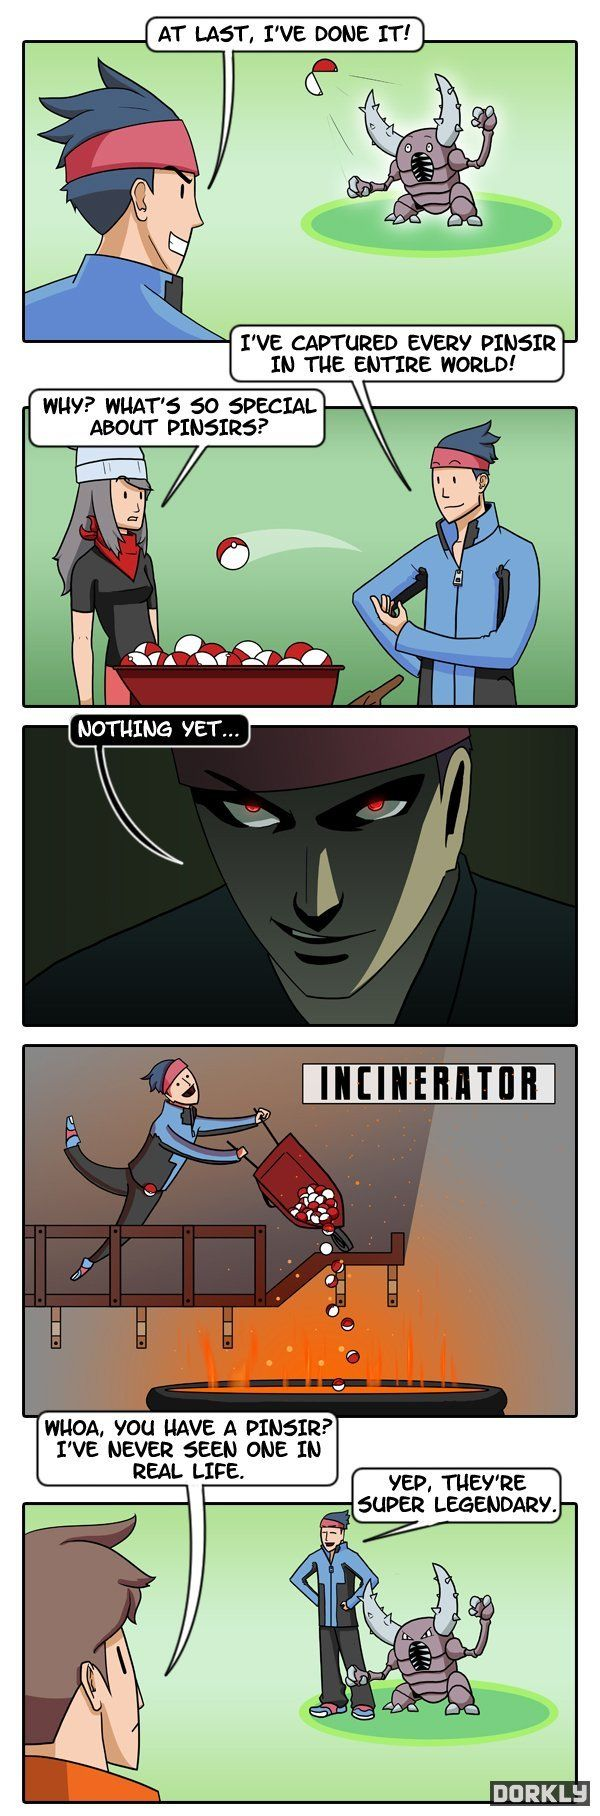 The Top 25 Dorkly Comics of 2012 11 25 - Image 13